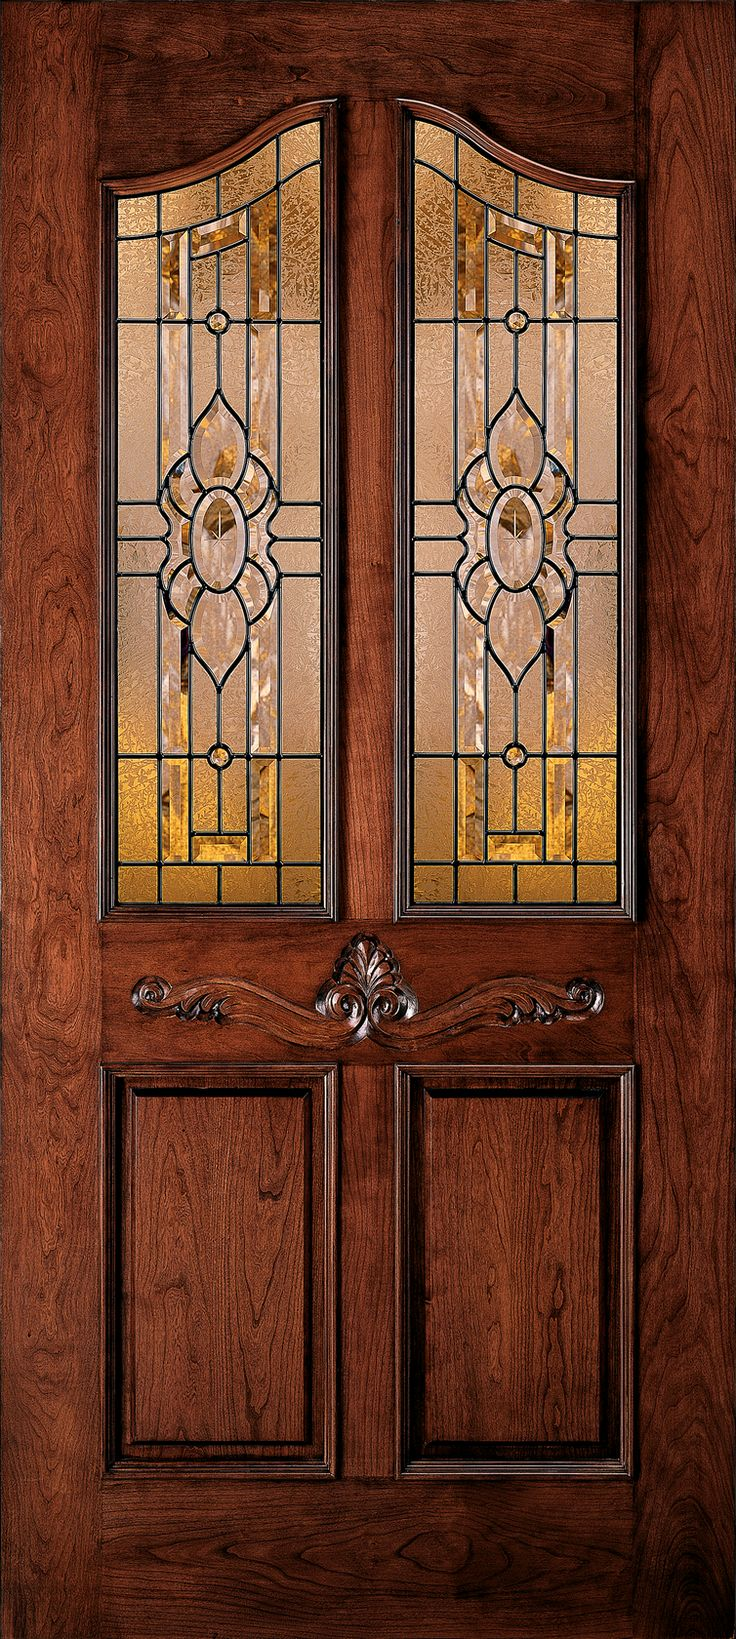 196 best Jeld-Wen Entry Doors images on Pinterest | Entrance doors ...